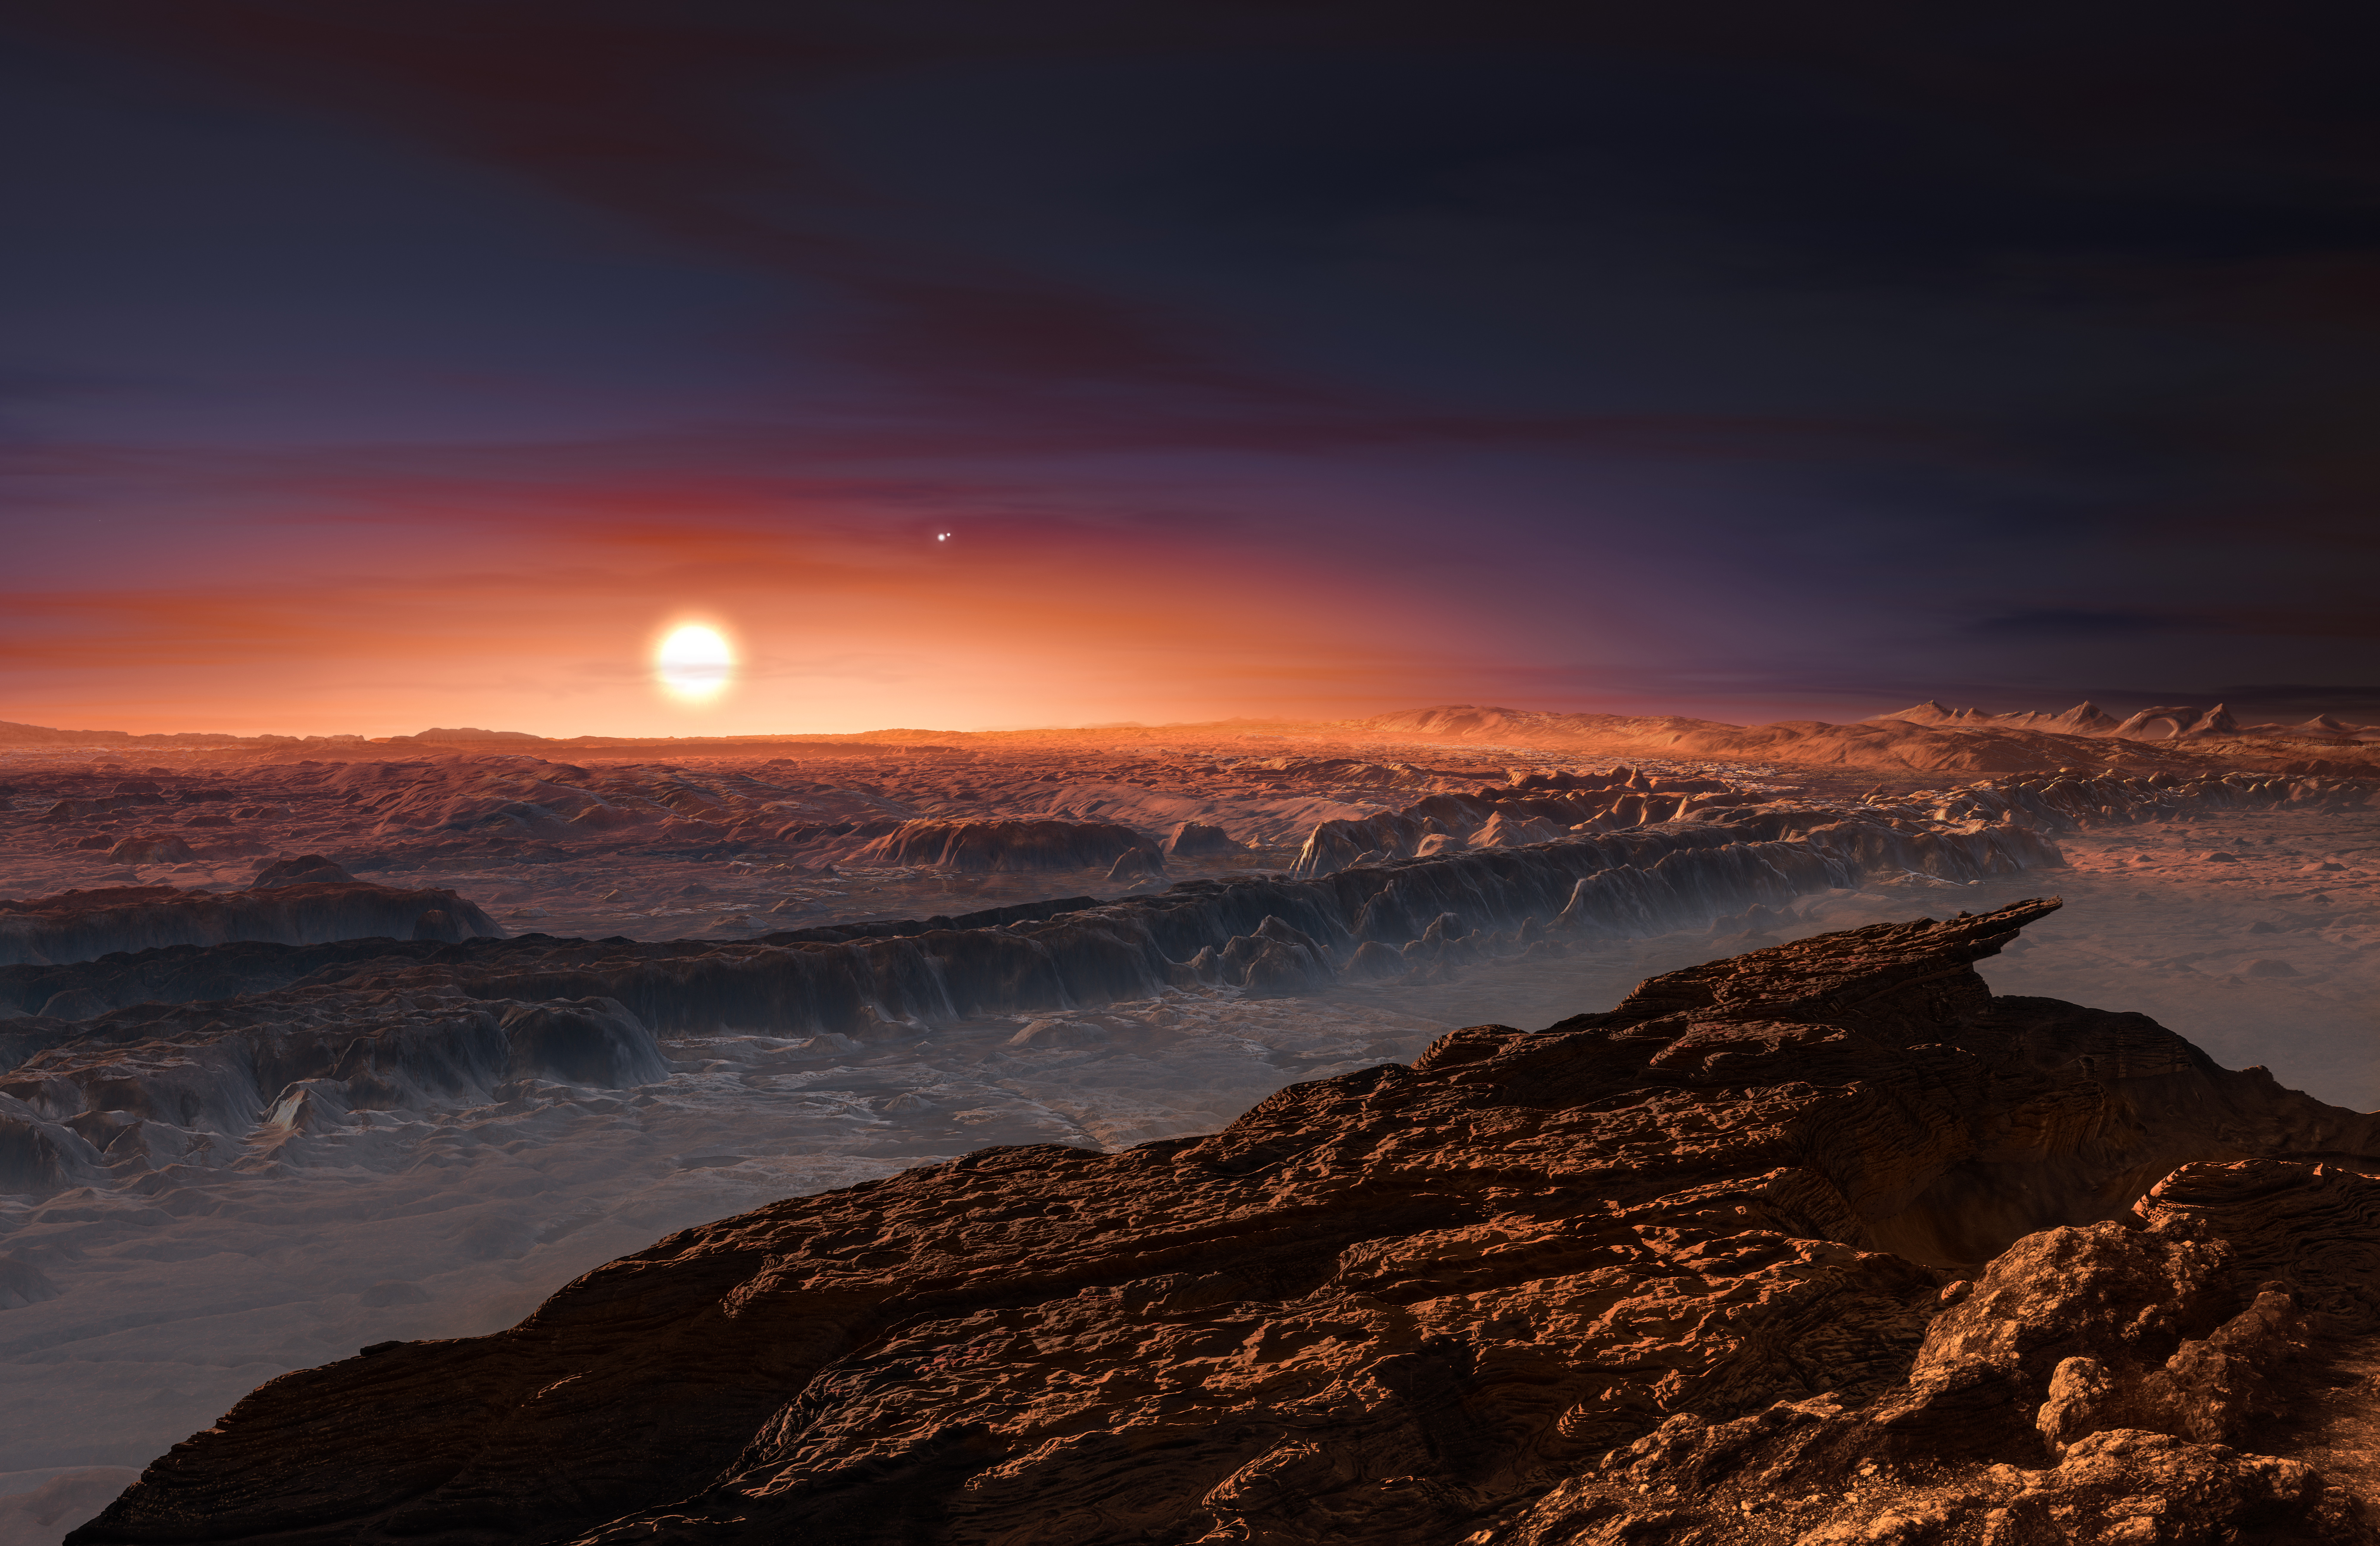 This artist's impression shows a view of the surface of the planet Proxima b orbiting the red dwarf star Proxima Centauri, the closest star to the Solar System. (ESO/M. Kornmesser)